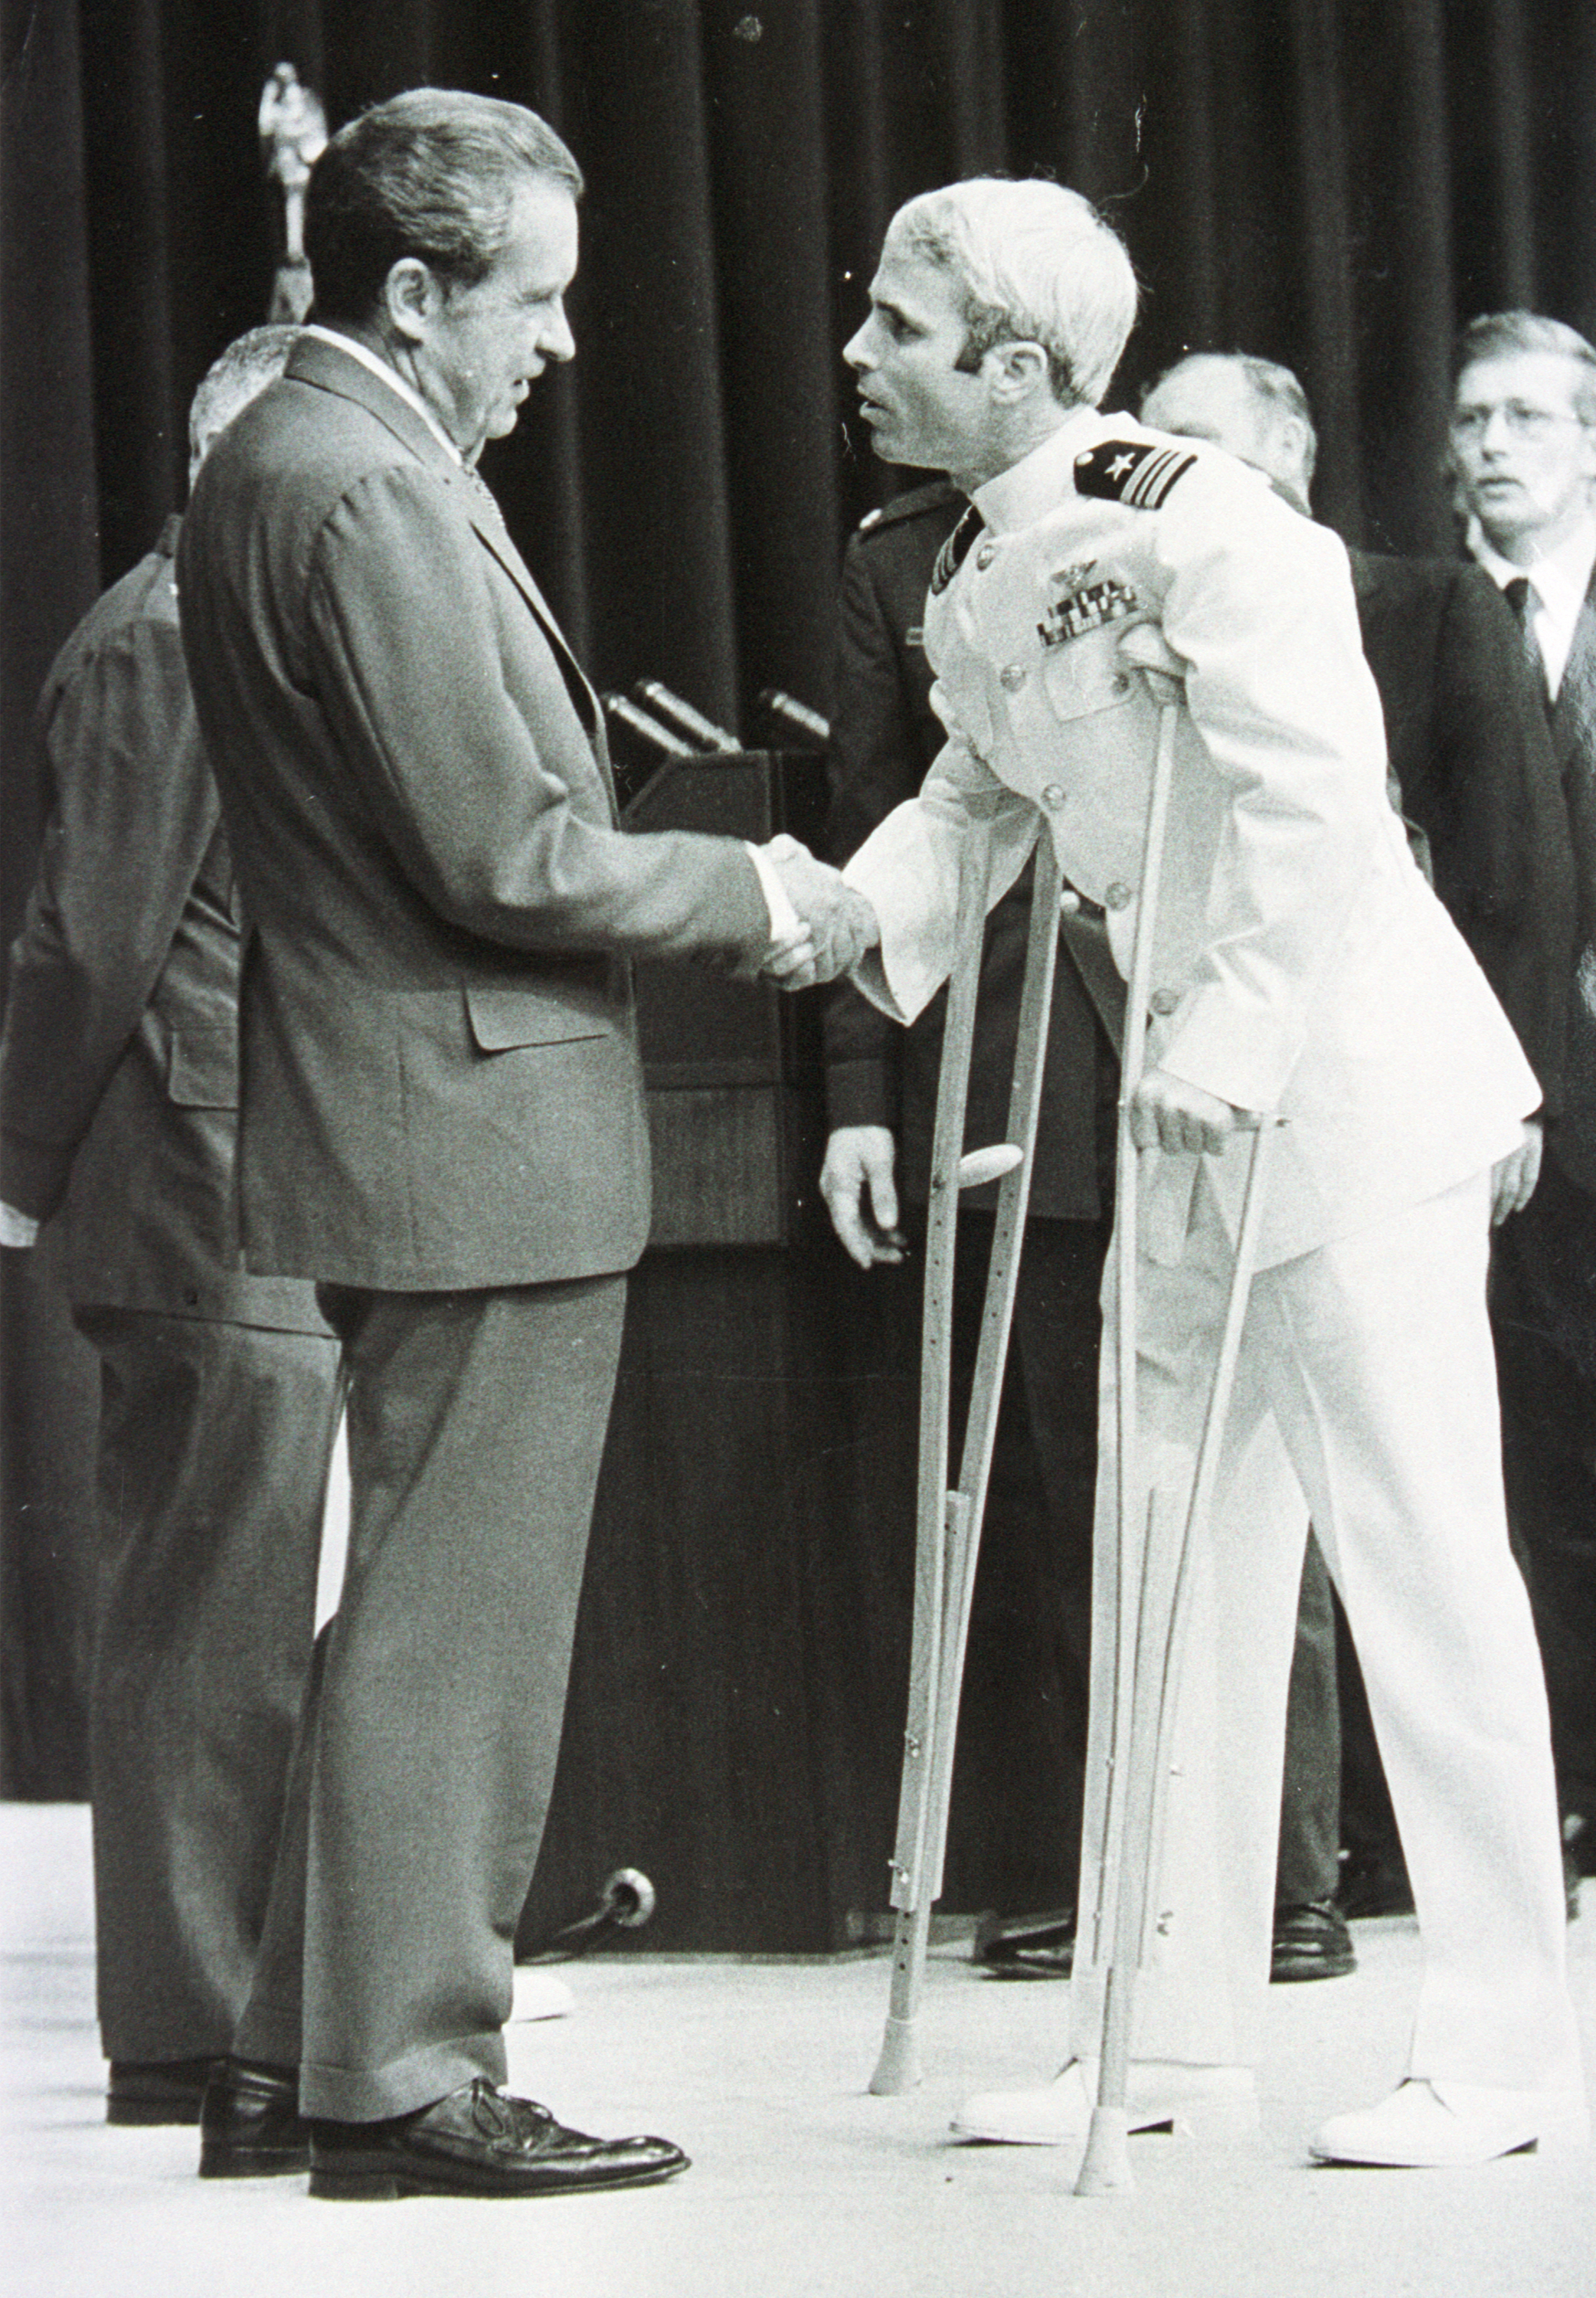 Lt. Cmdr. John McCain is welcomed by U.S. President Richard Nixon on May 24, 1973, in Washington, D.C., upon McCain's release from a POW camp during the Vietnam War. (Getty Images)